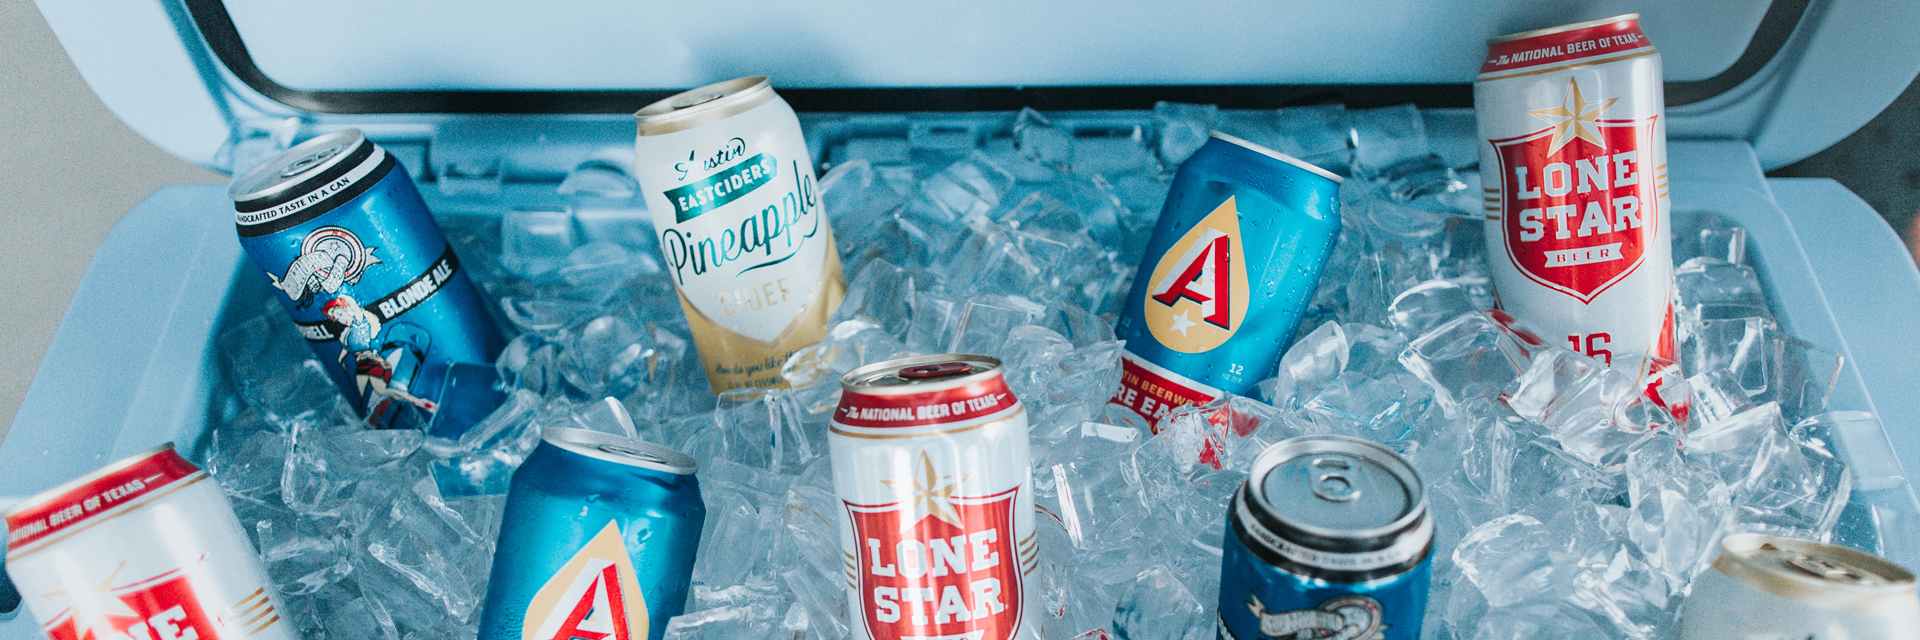 Cans of Texas beer on ice in a blue cooler